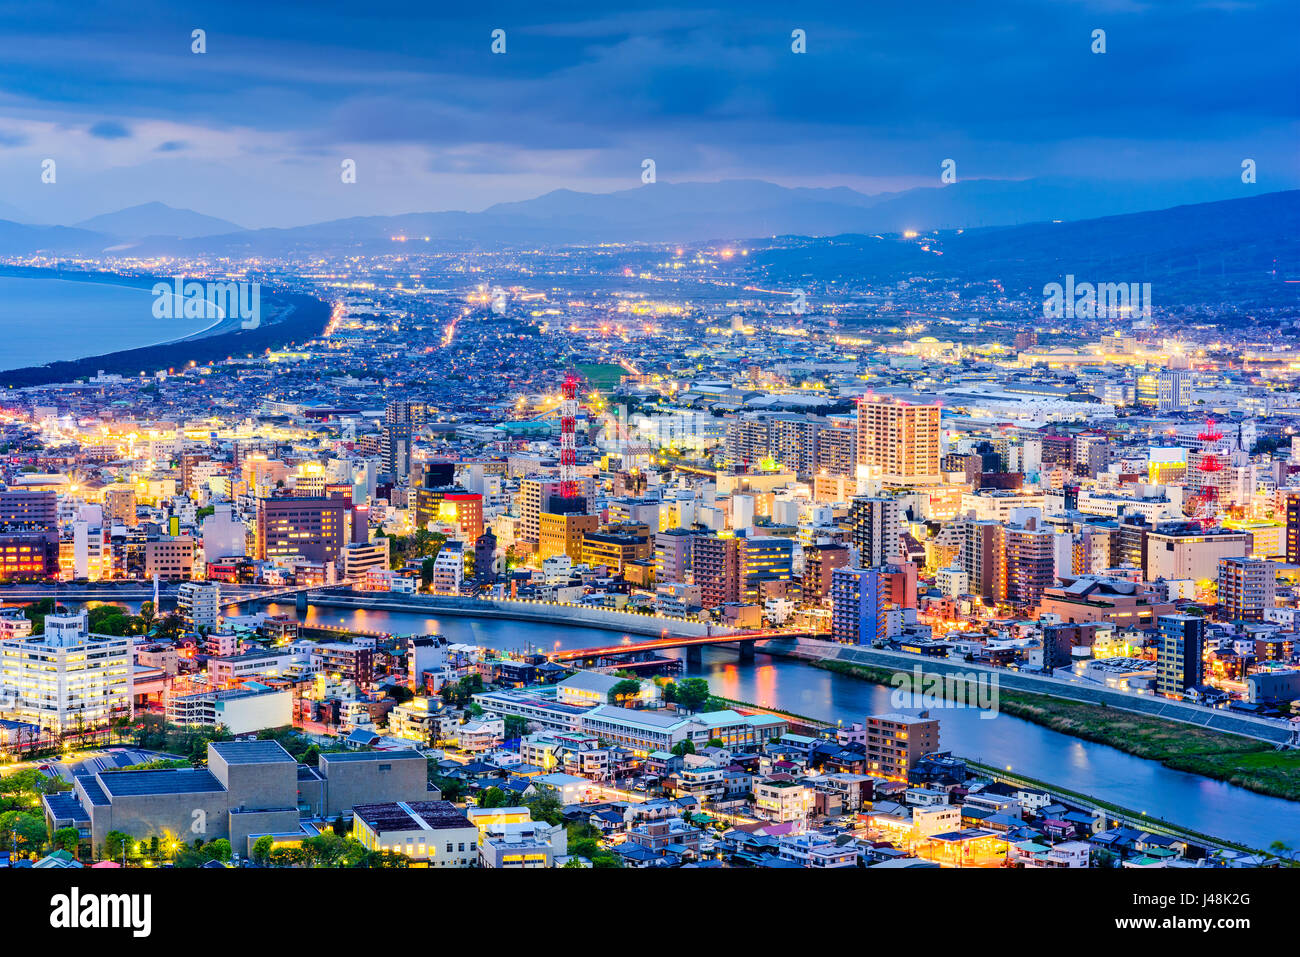 Numazu, Japan Skyline at twilight. - Stock Image